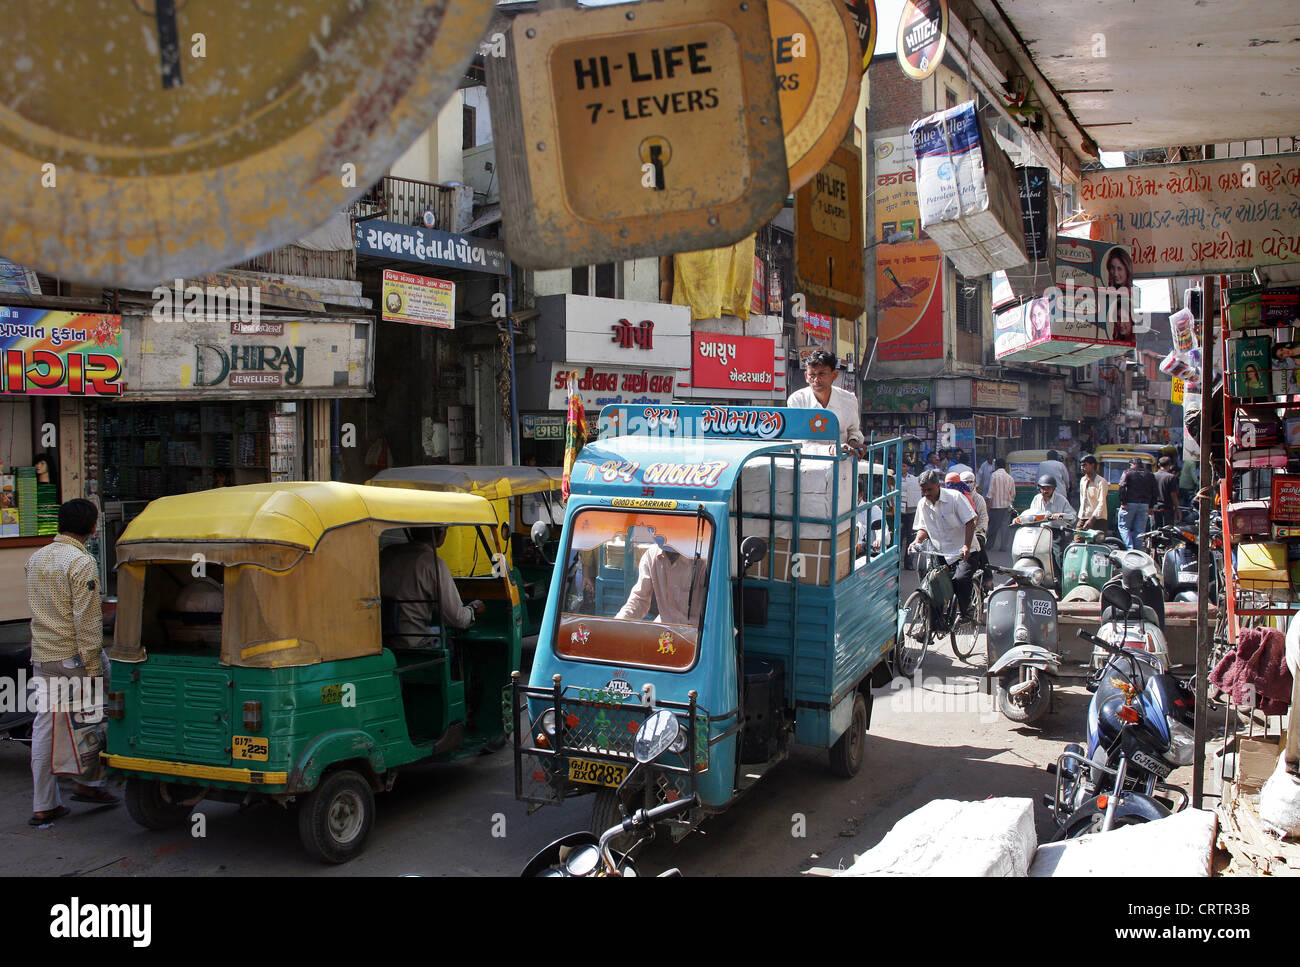 narrow street, old town, city center of Ahmedabad, Gujarat Province, India - Stock Image